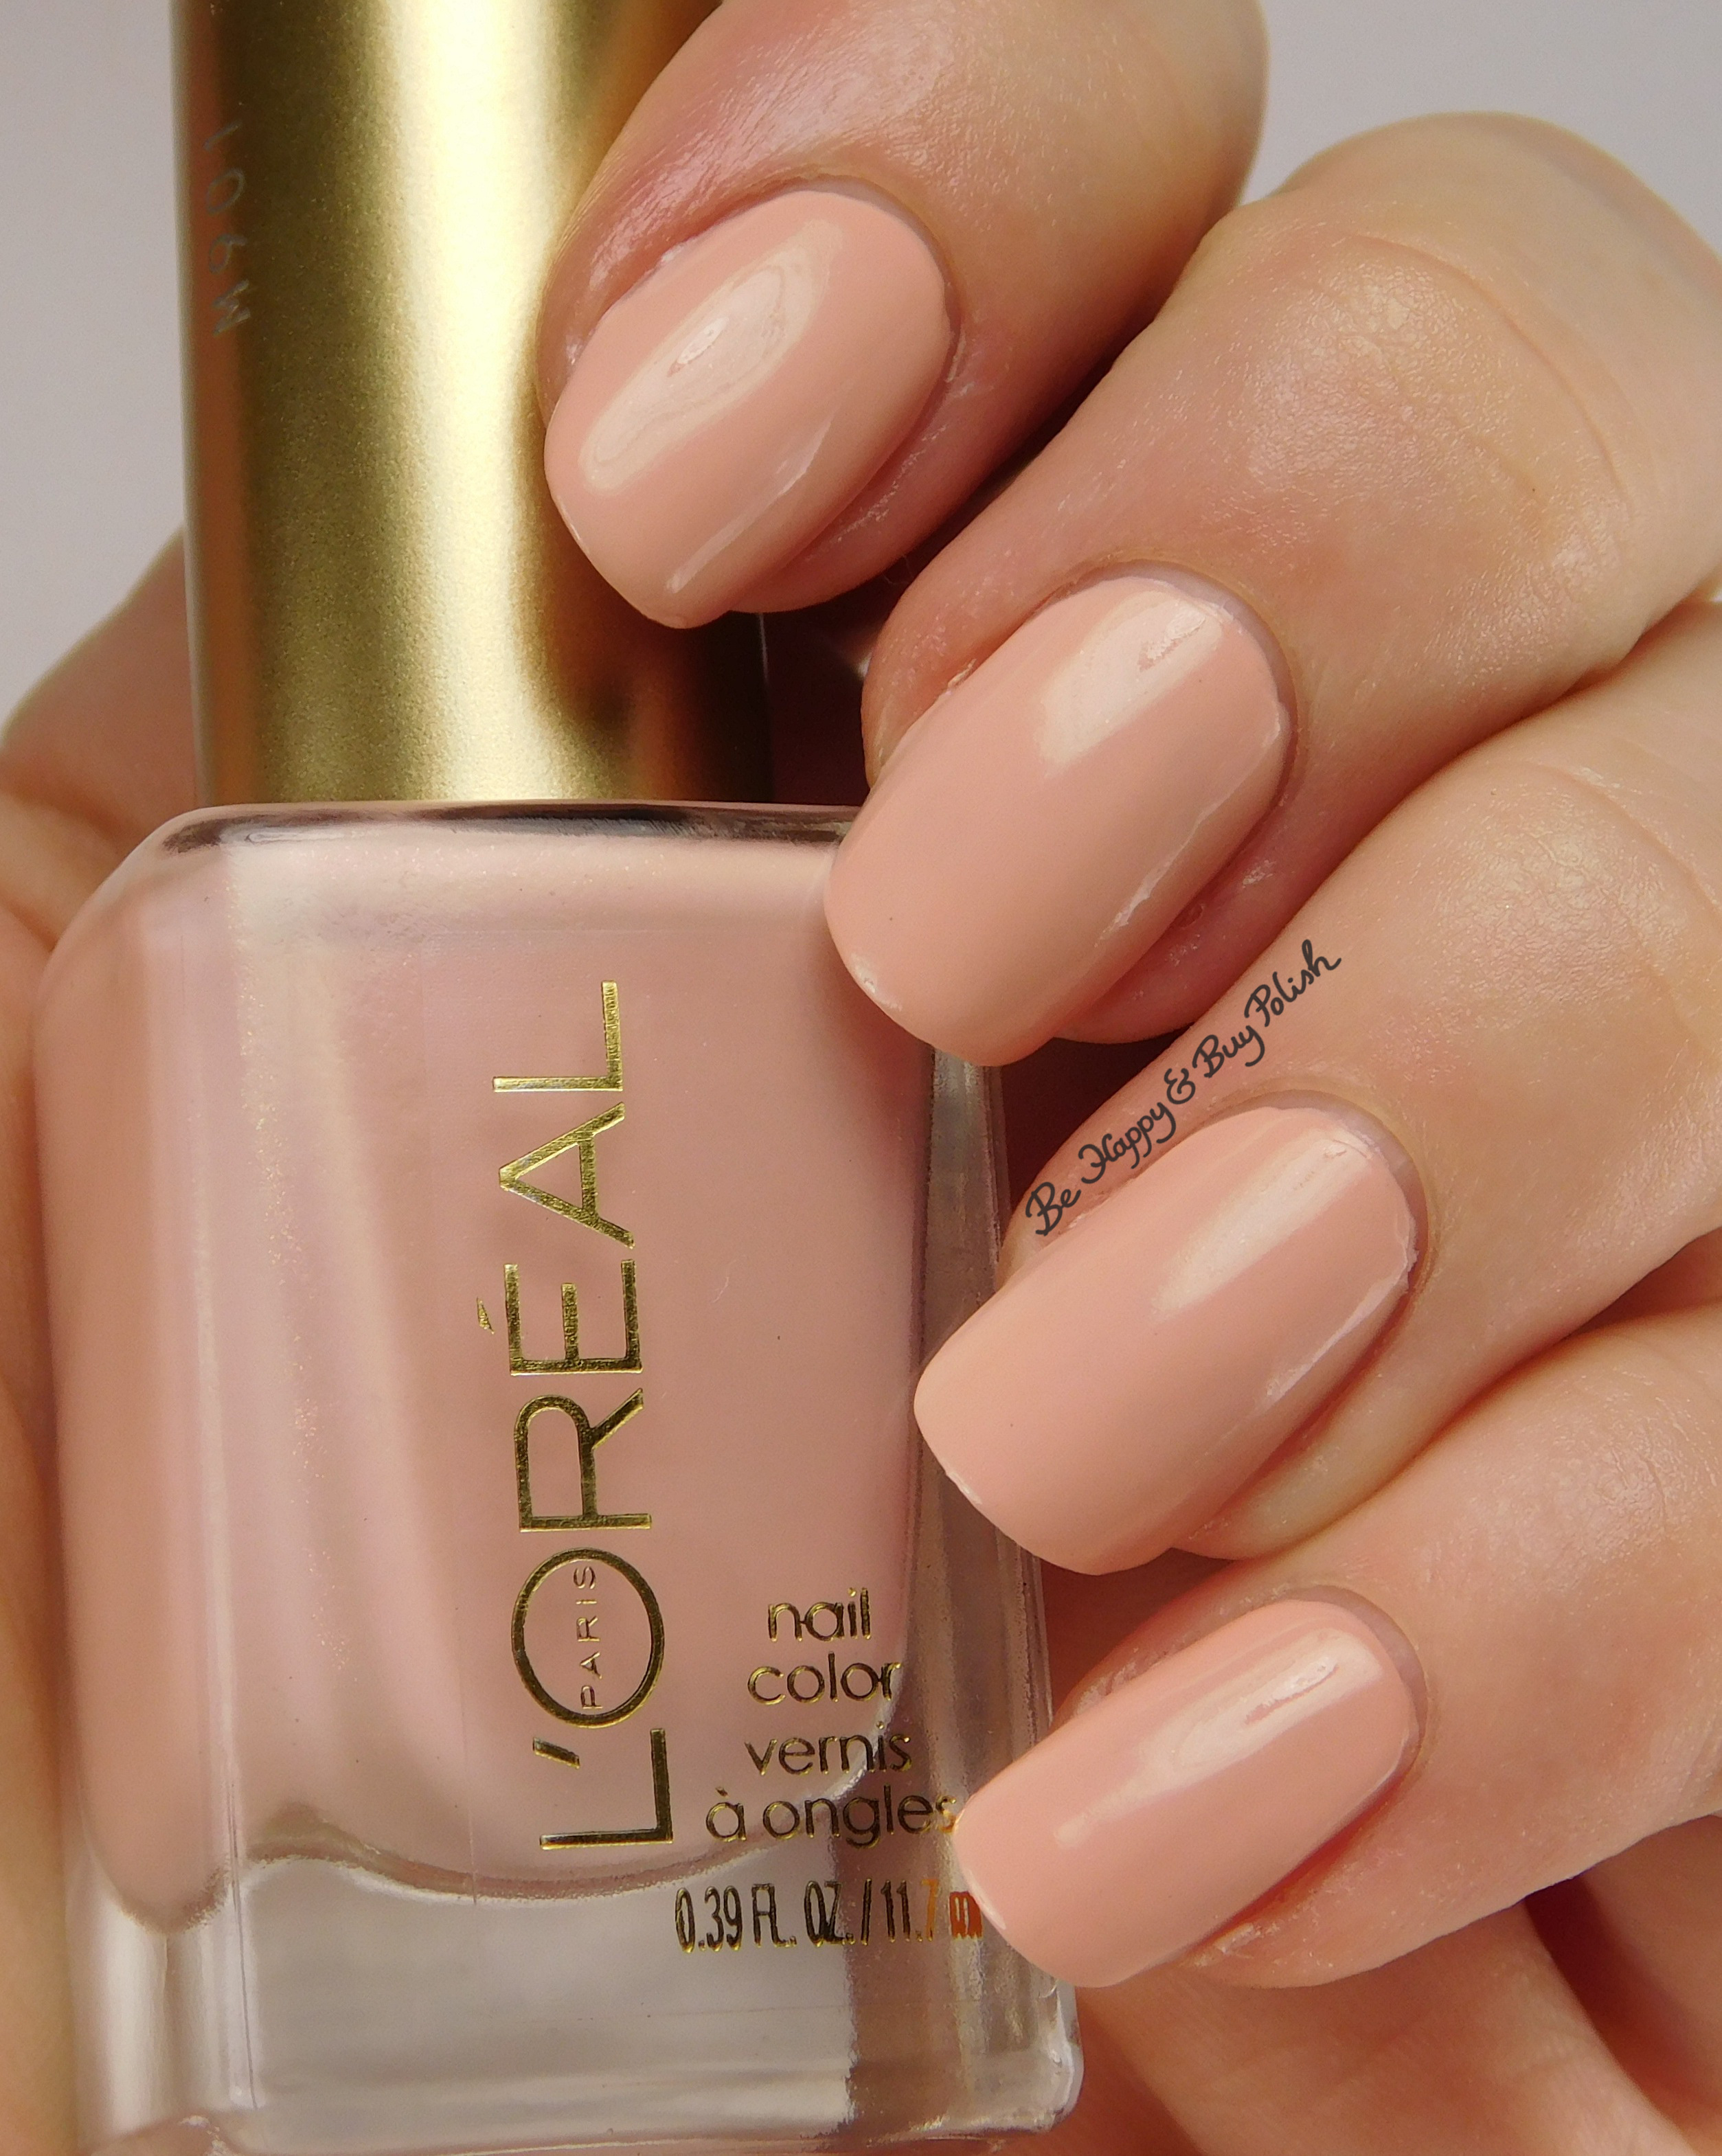 L\'Oreal Bohemian Beauty nail polishes swatches + review | Be Happy ...